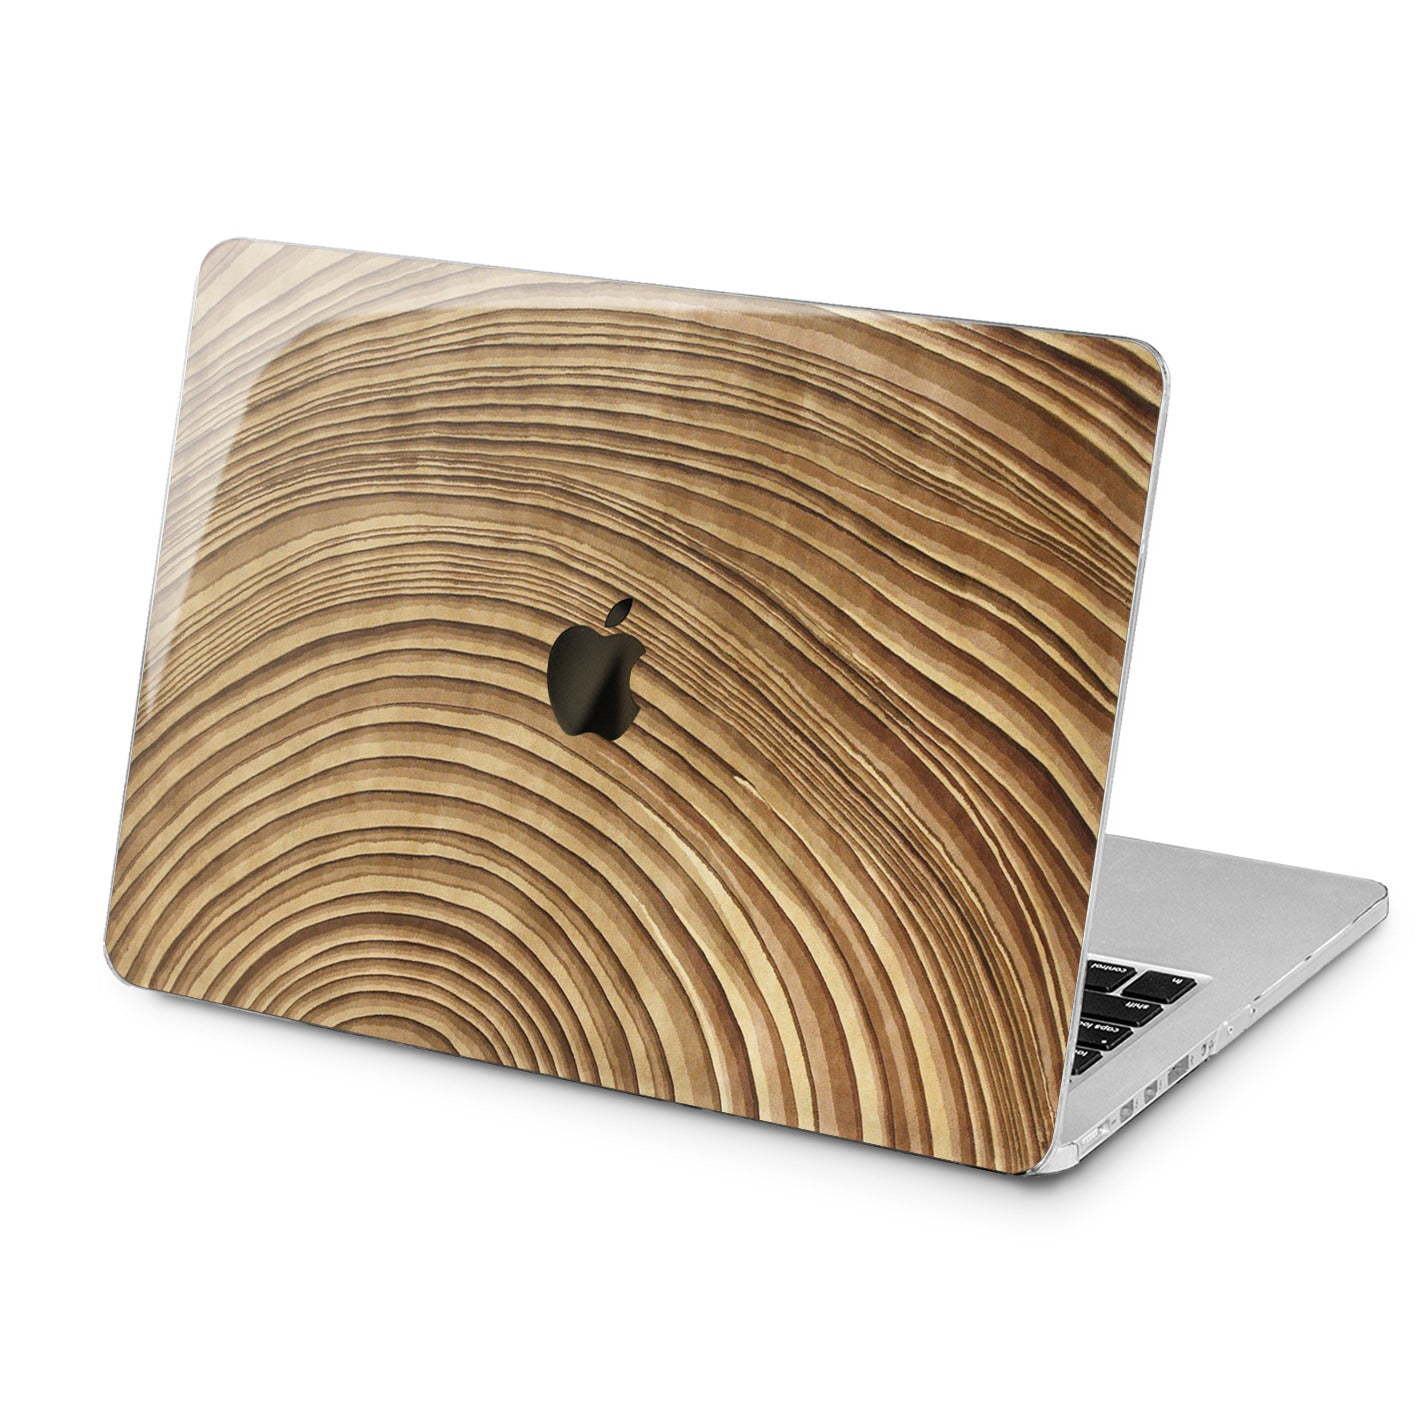 Lex Altern Lex Altern Rounded Wooden Art Case for your Laptop Apple Macbook.